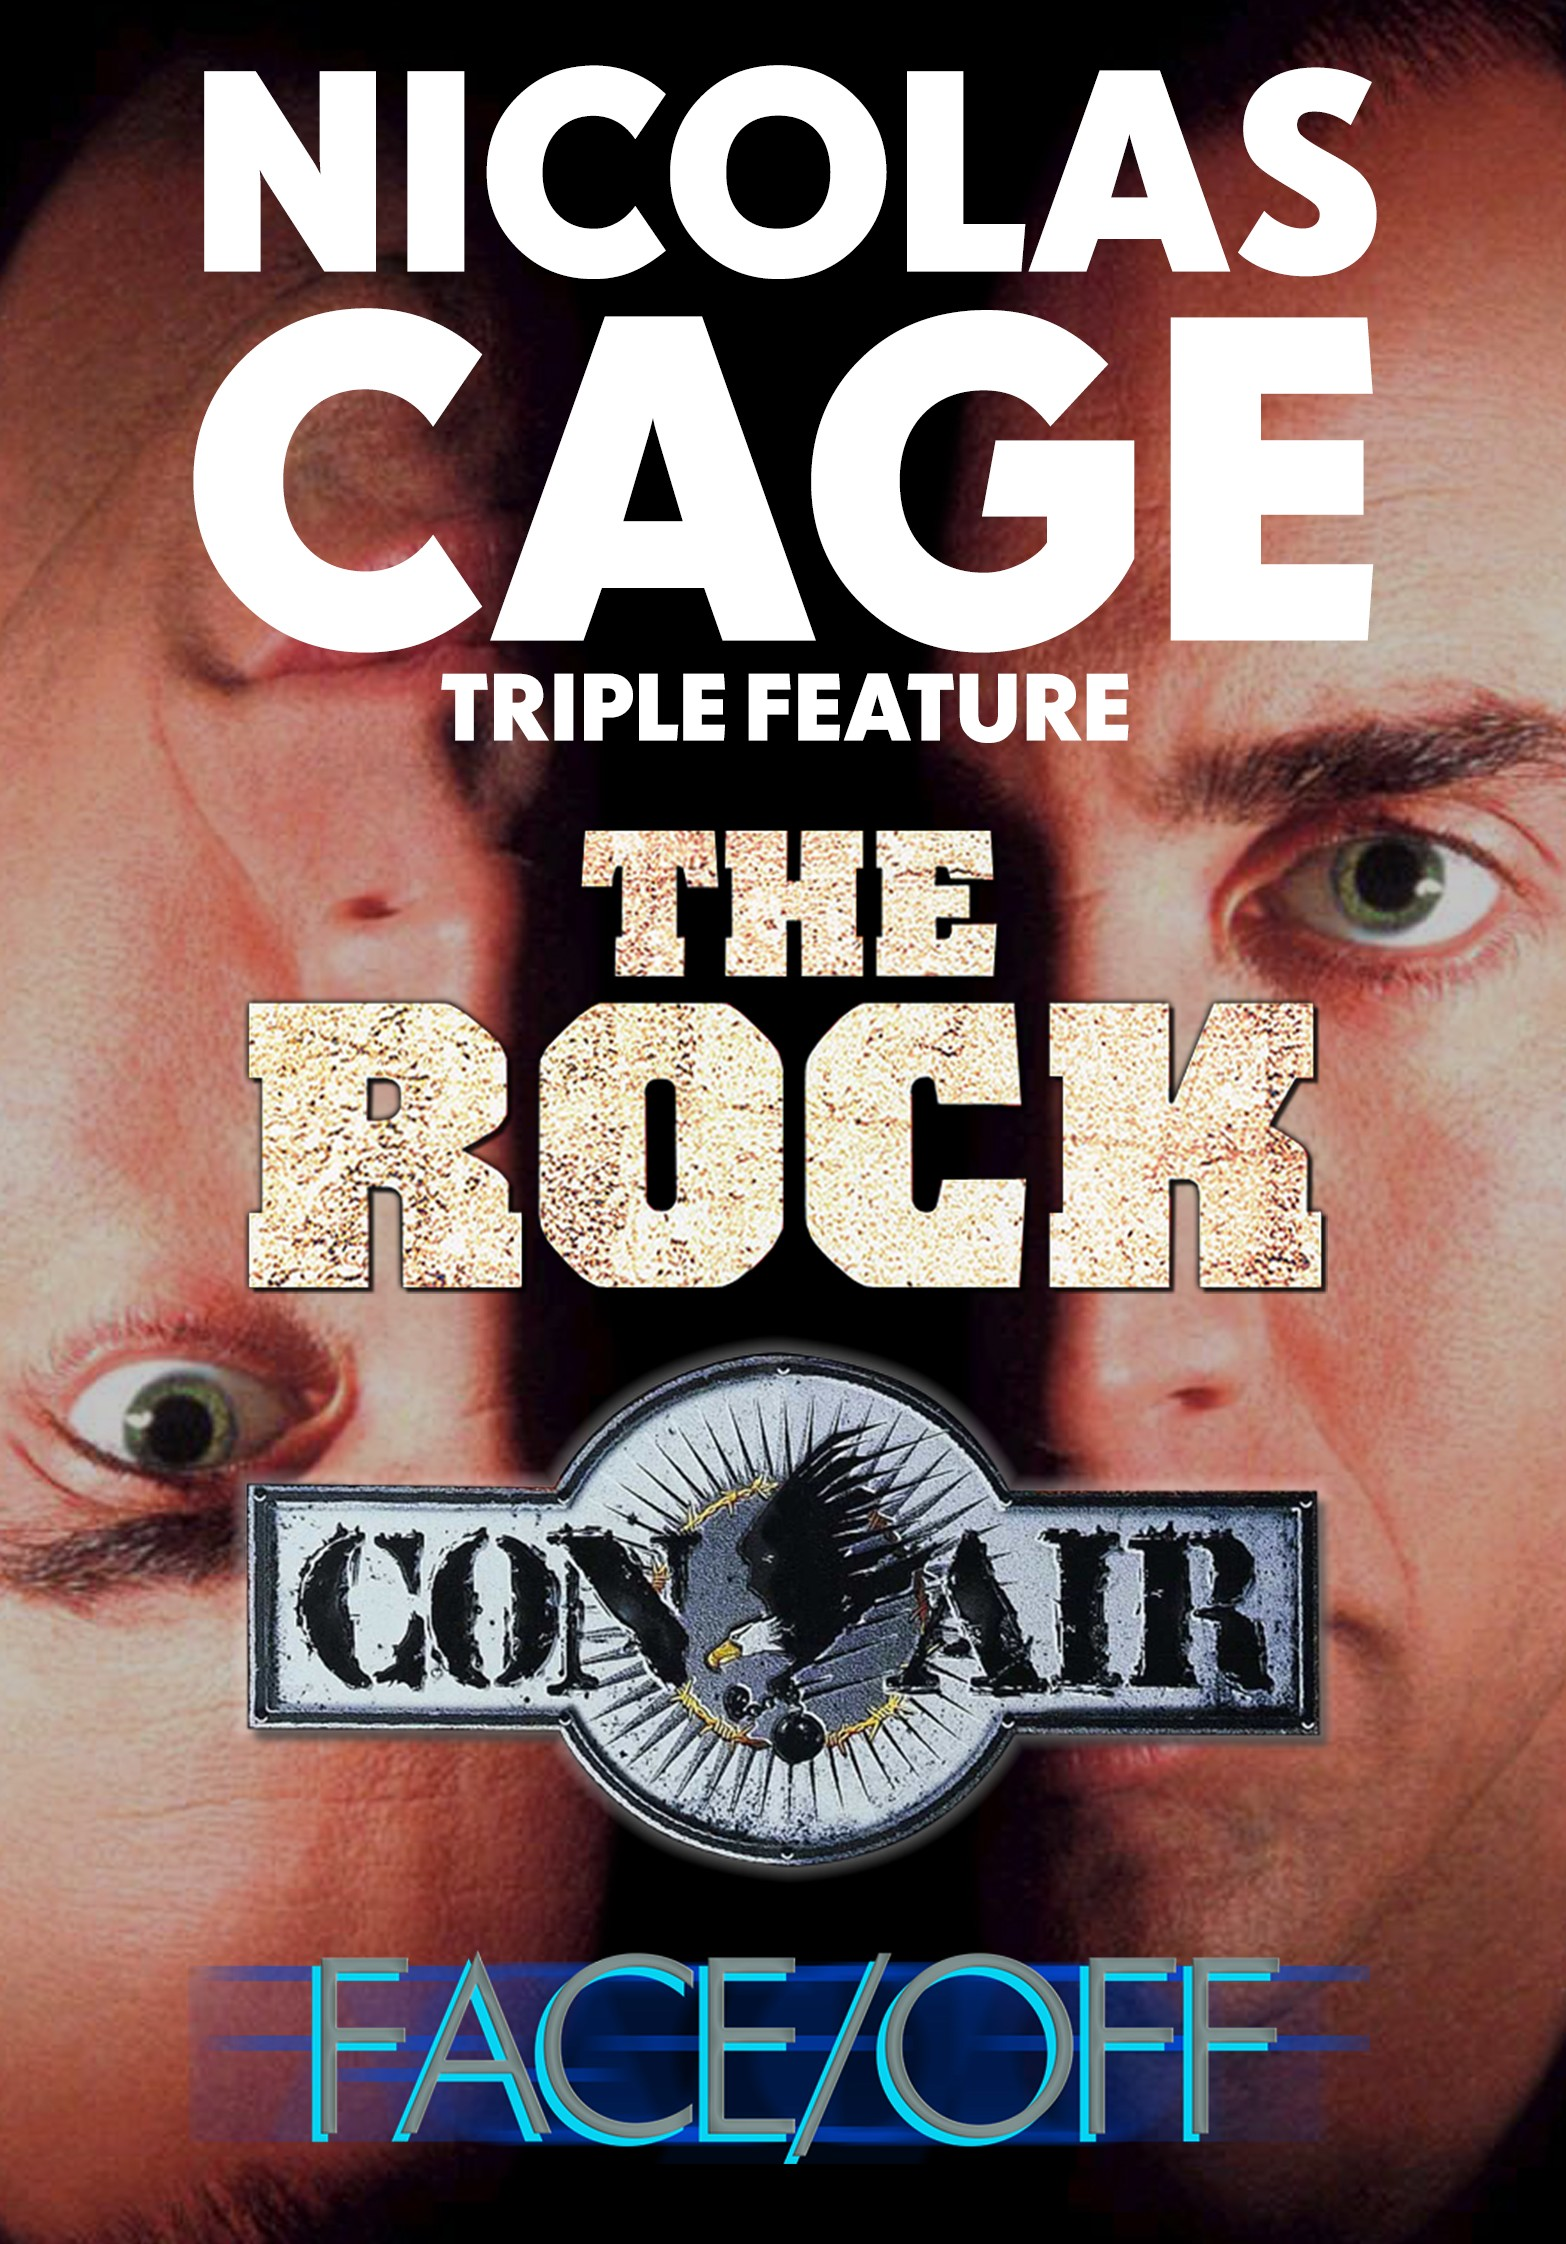 NICOLAS CAGE TRIPLE FEATURE